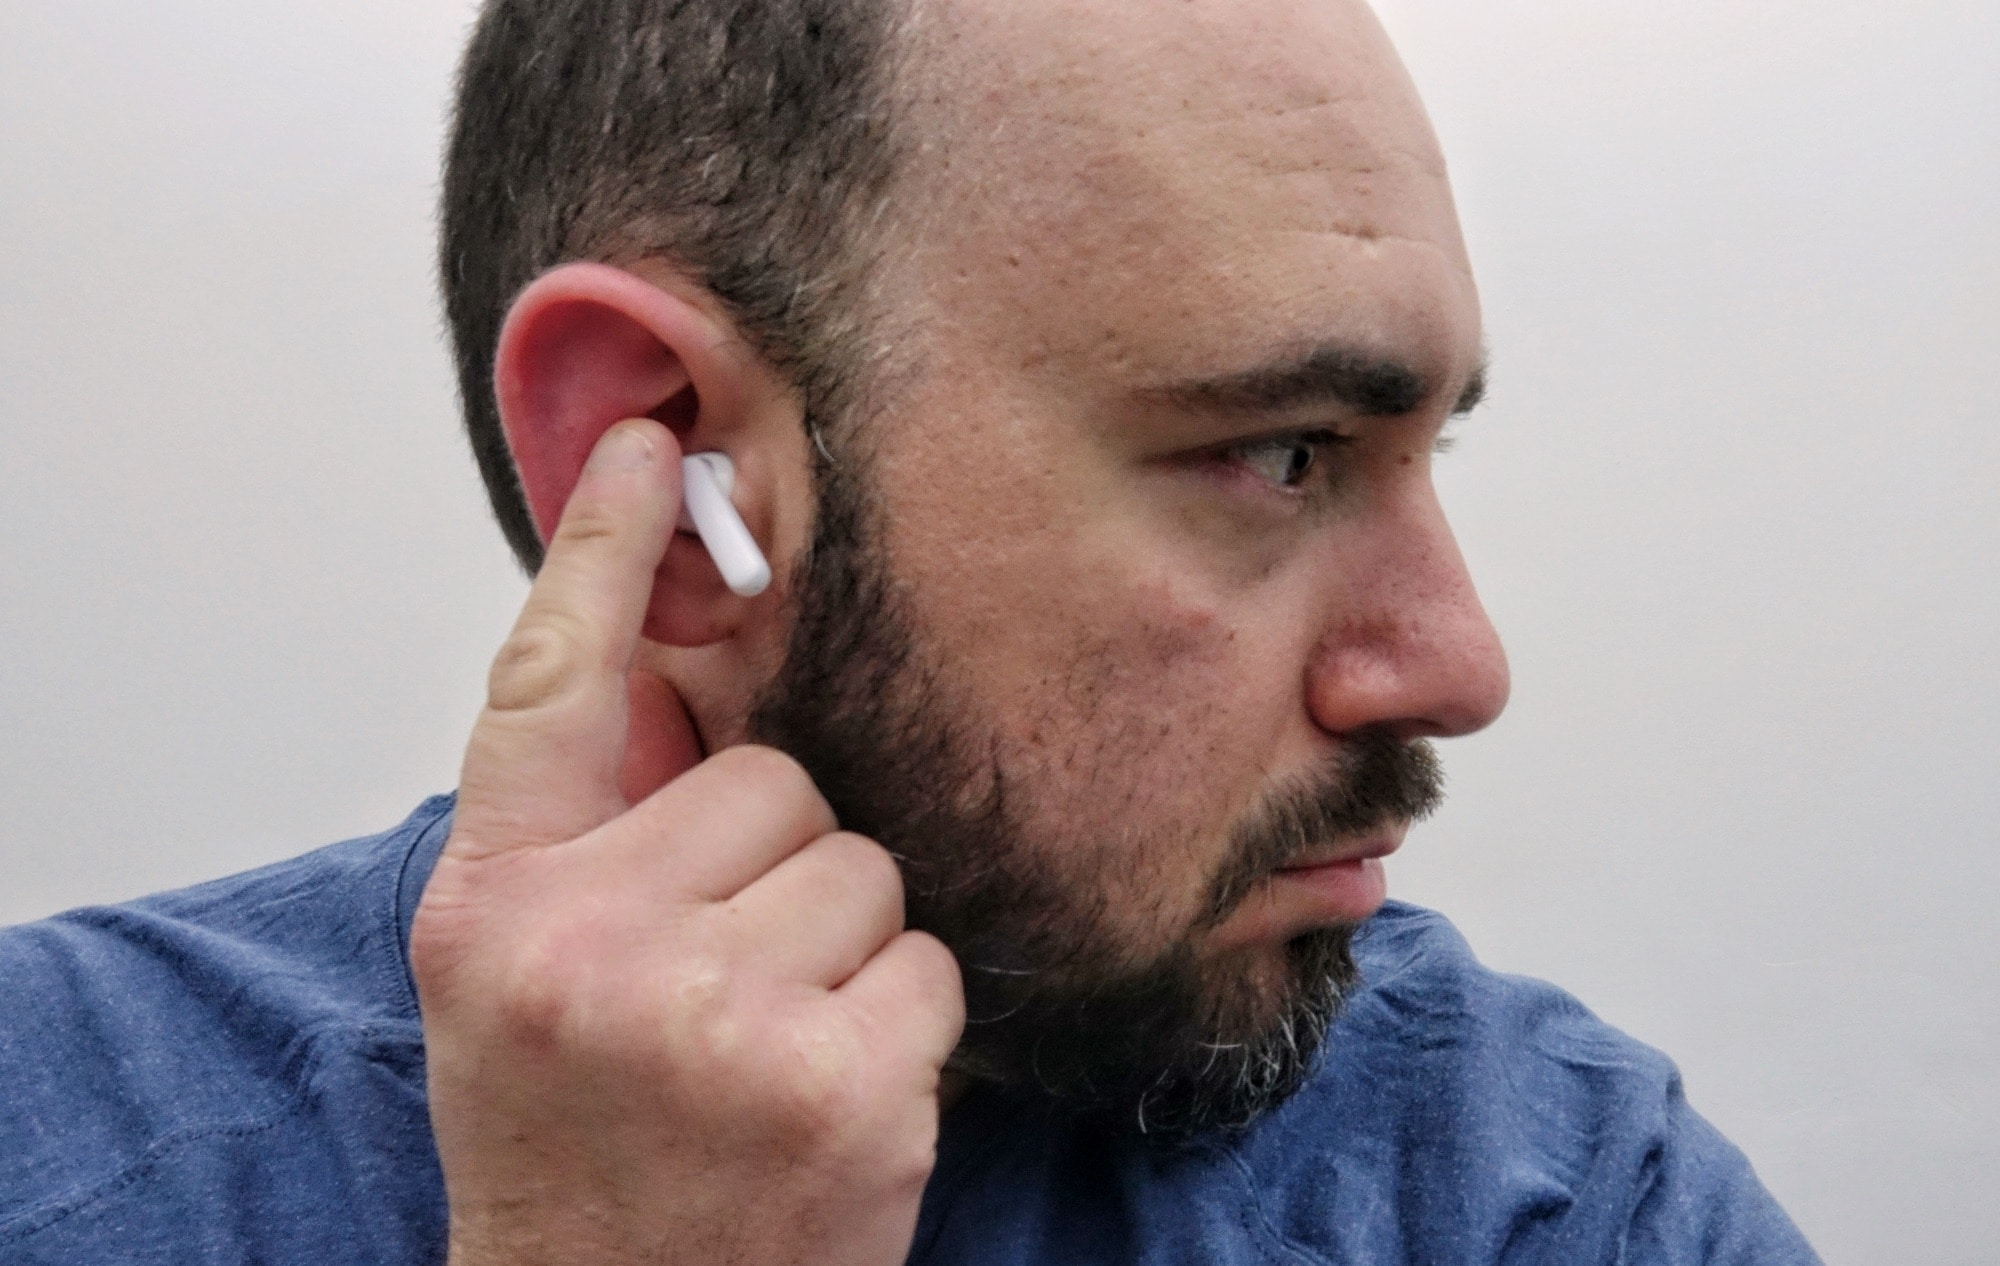 Listening to the Oppo Enco W51